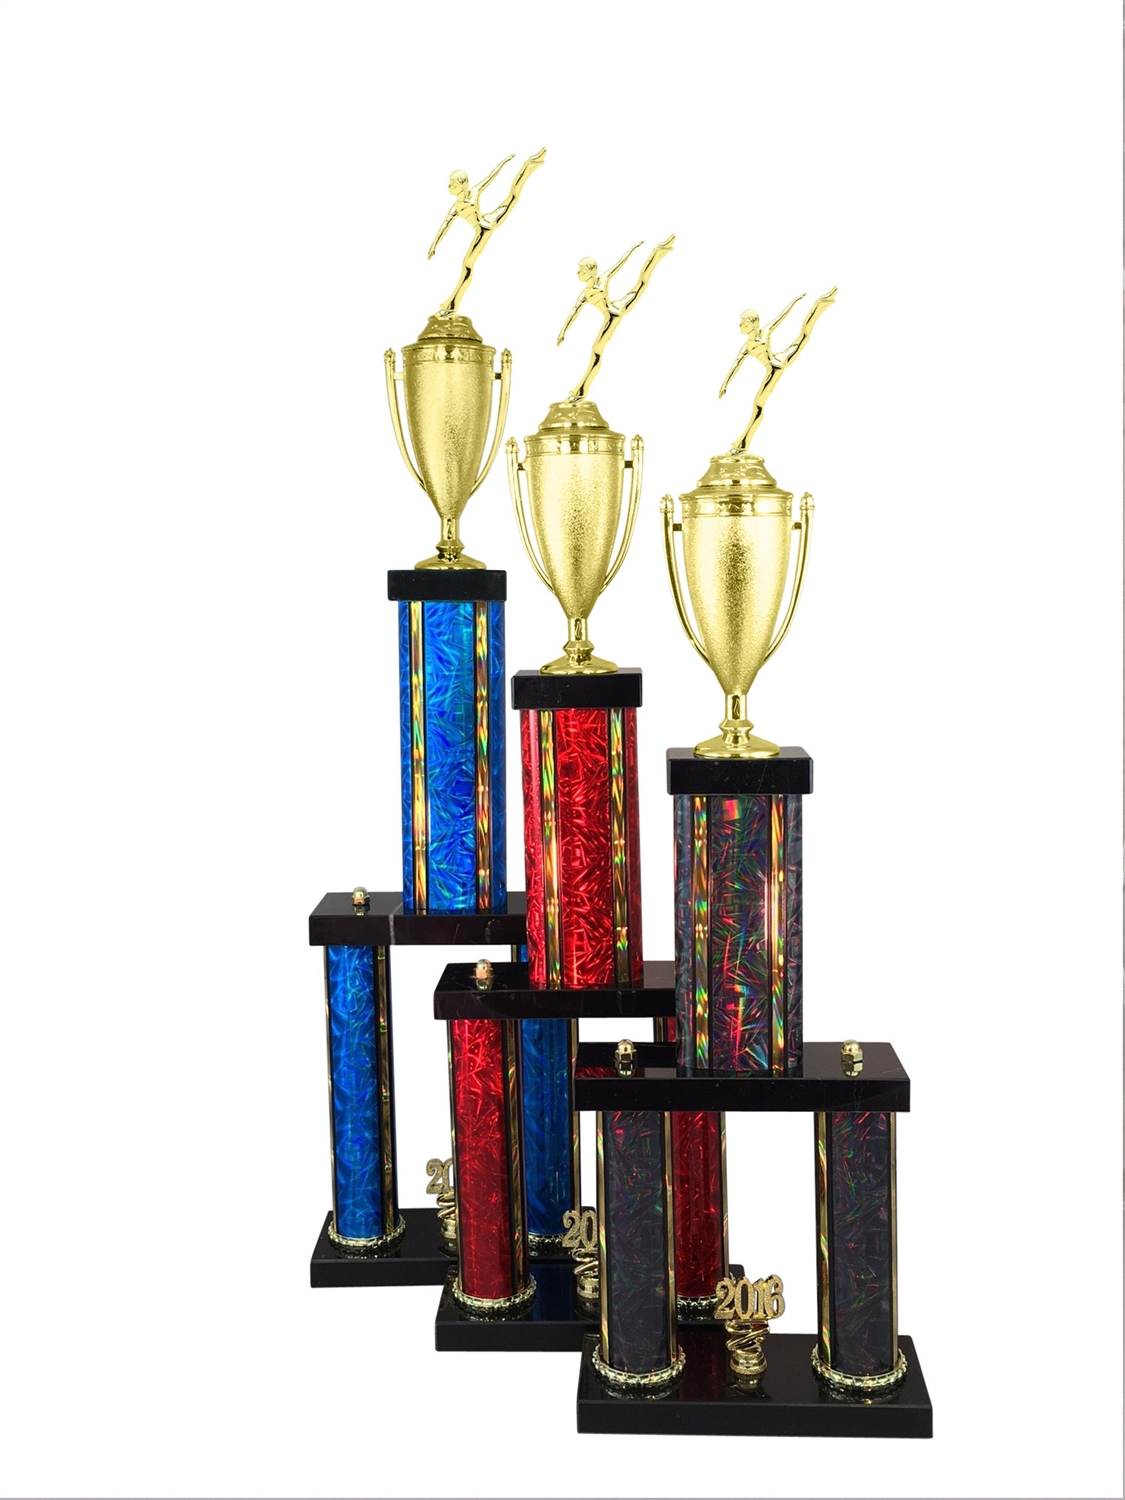 Dance Trophy Available in 11 Color & 6 Size Options